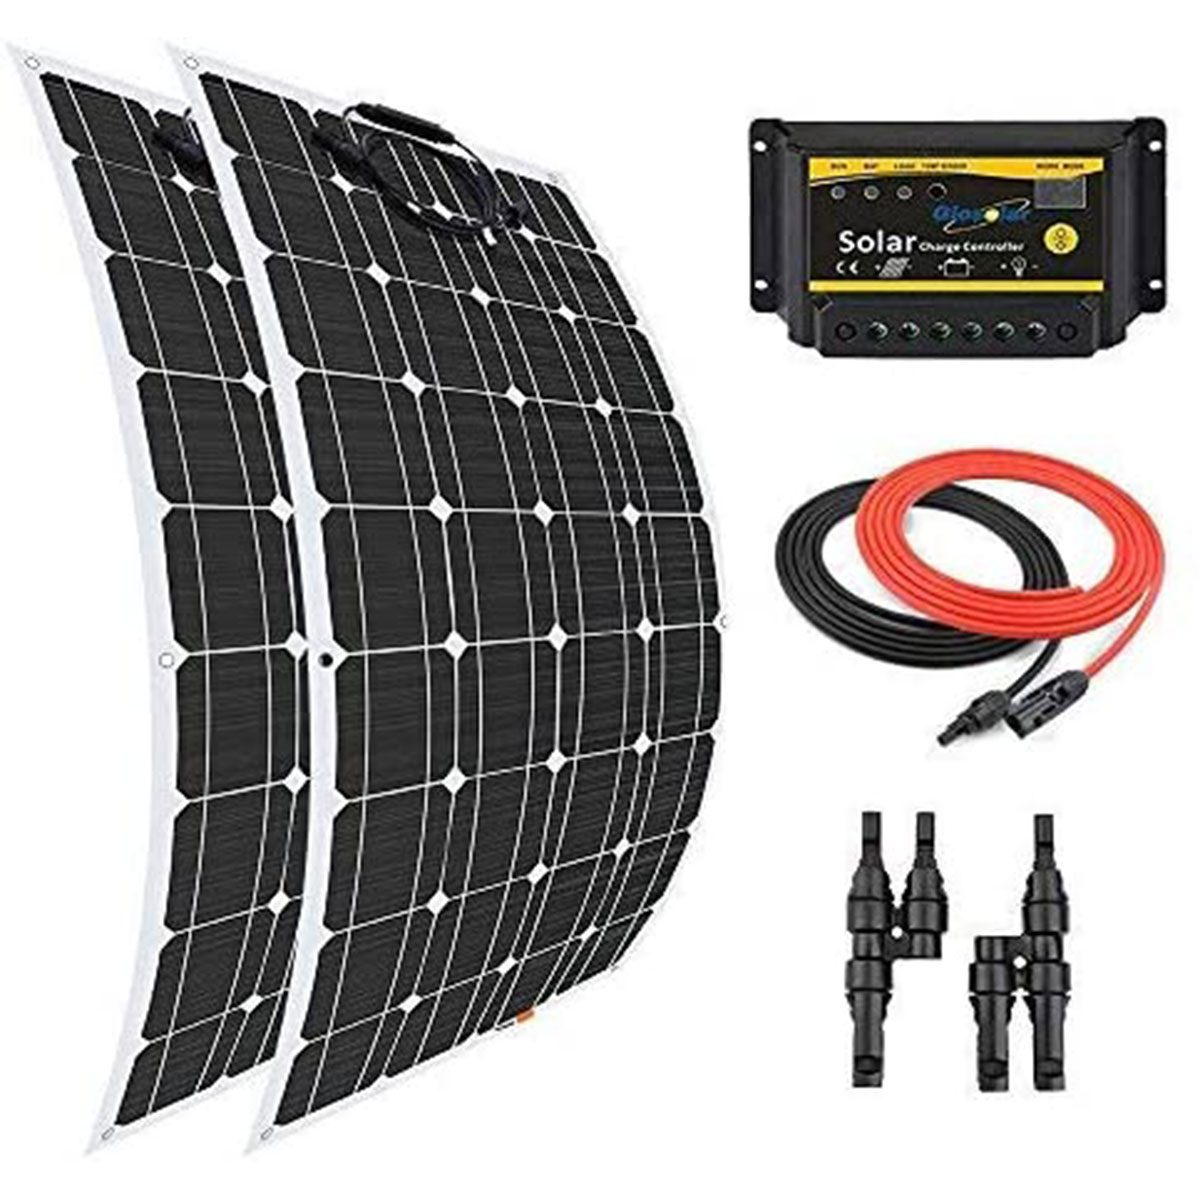 Giosolar solar kit